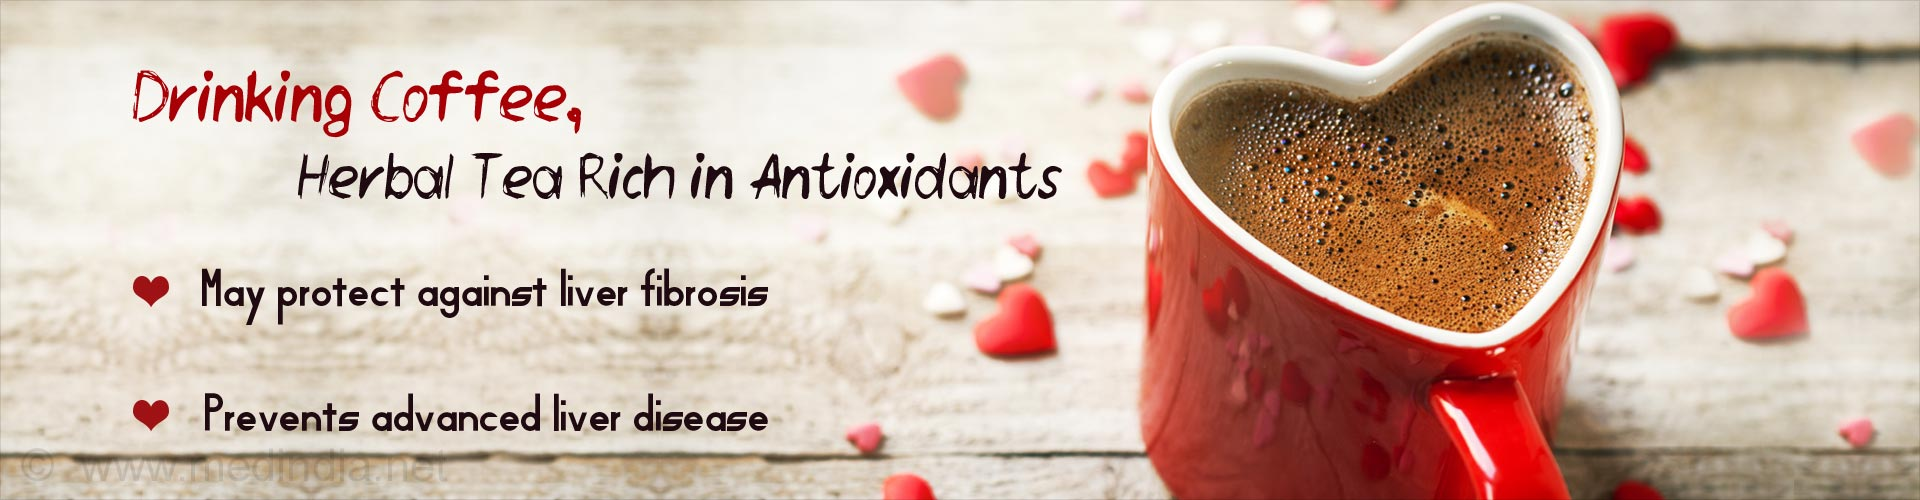 Drinking coffee, herbal tea rich in antioxidants